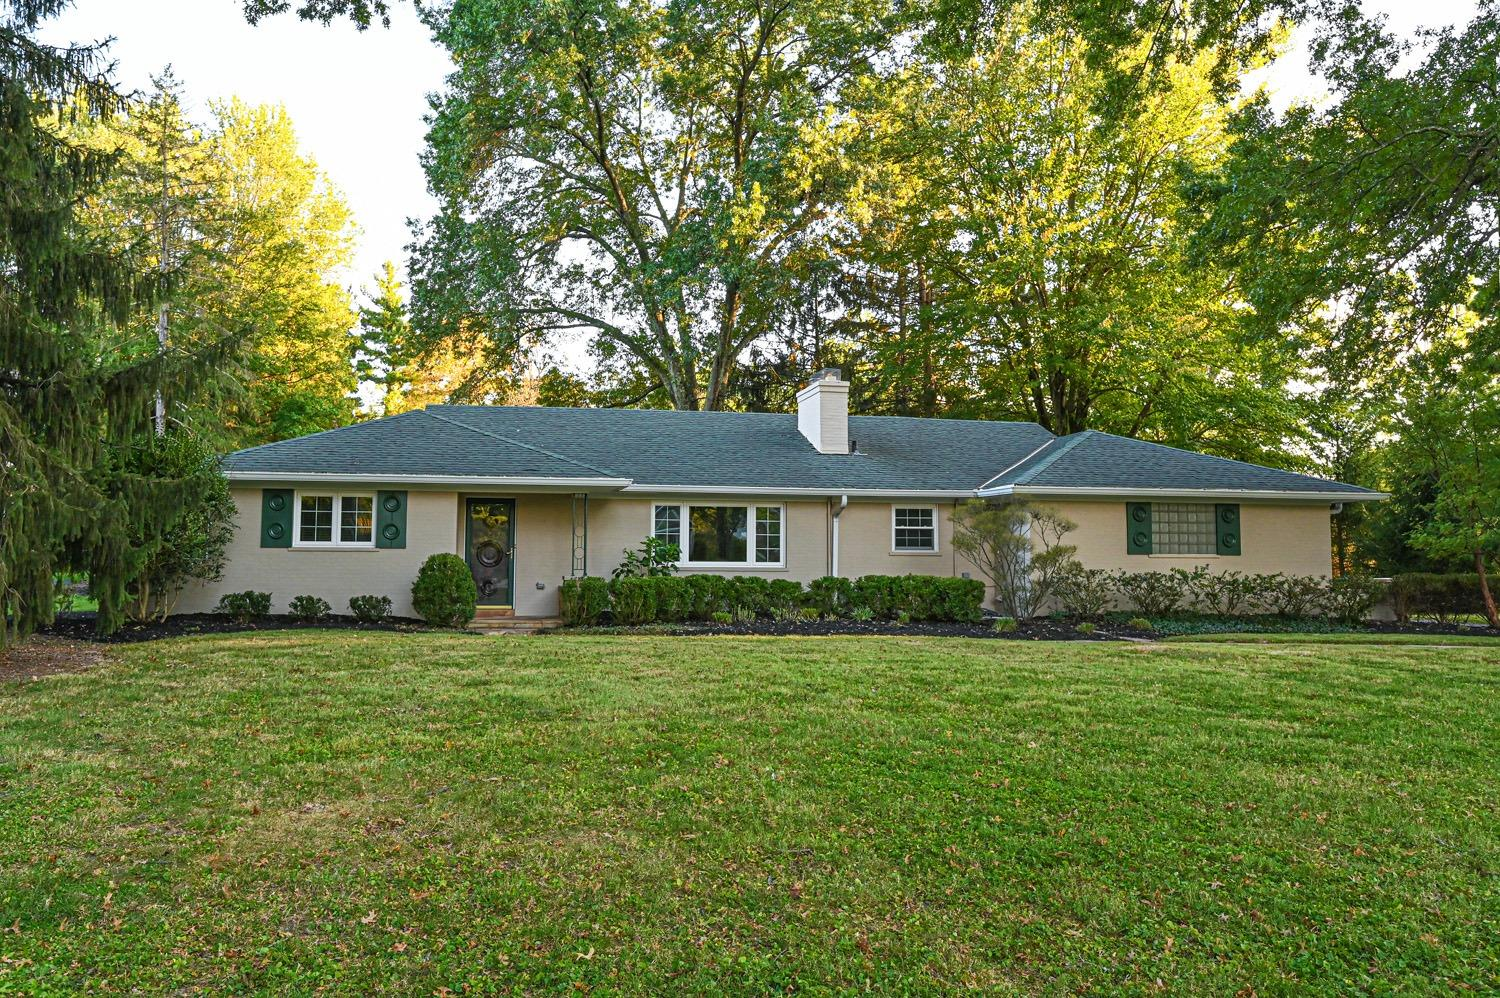 7995 Remington Rd Indian Hill, OH